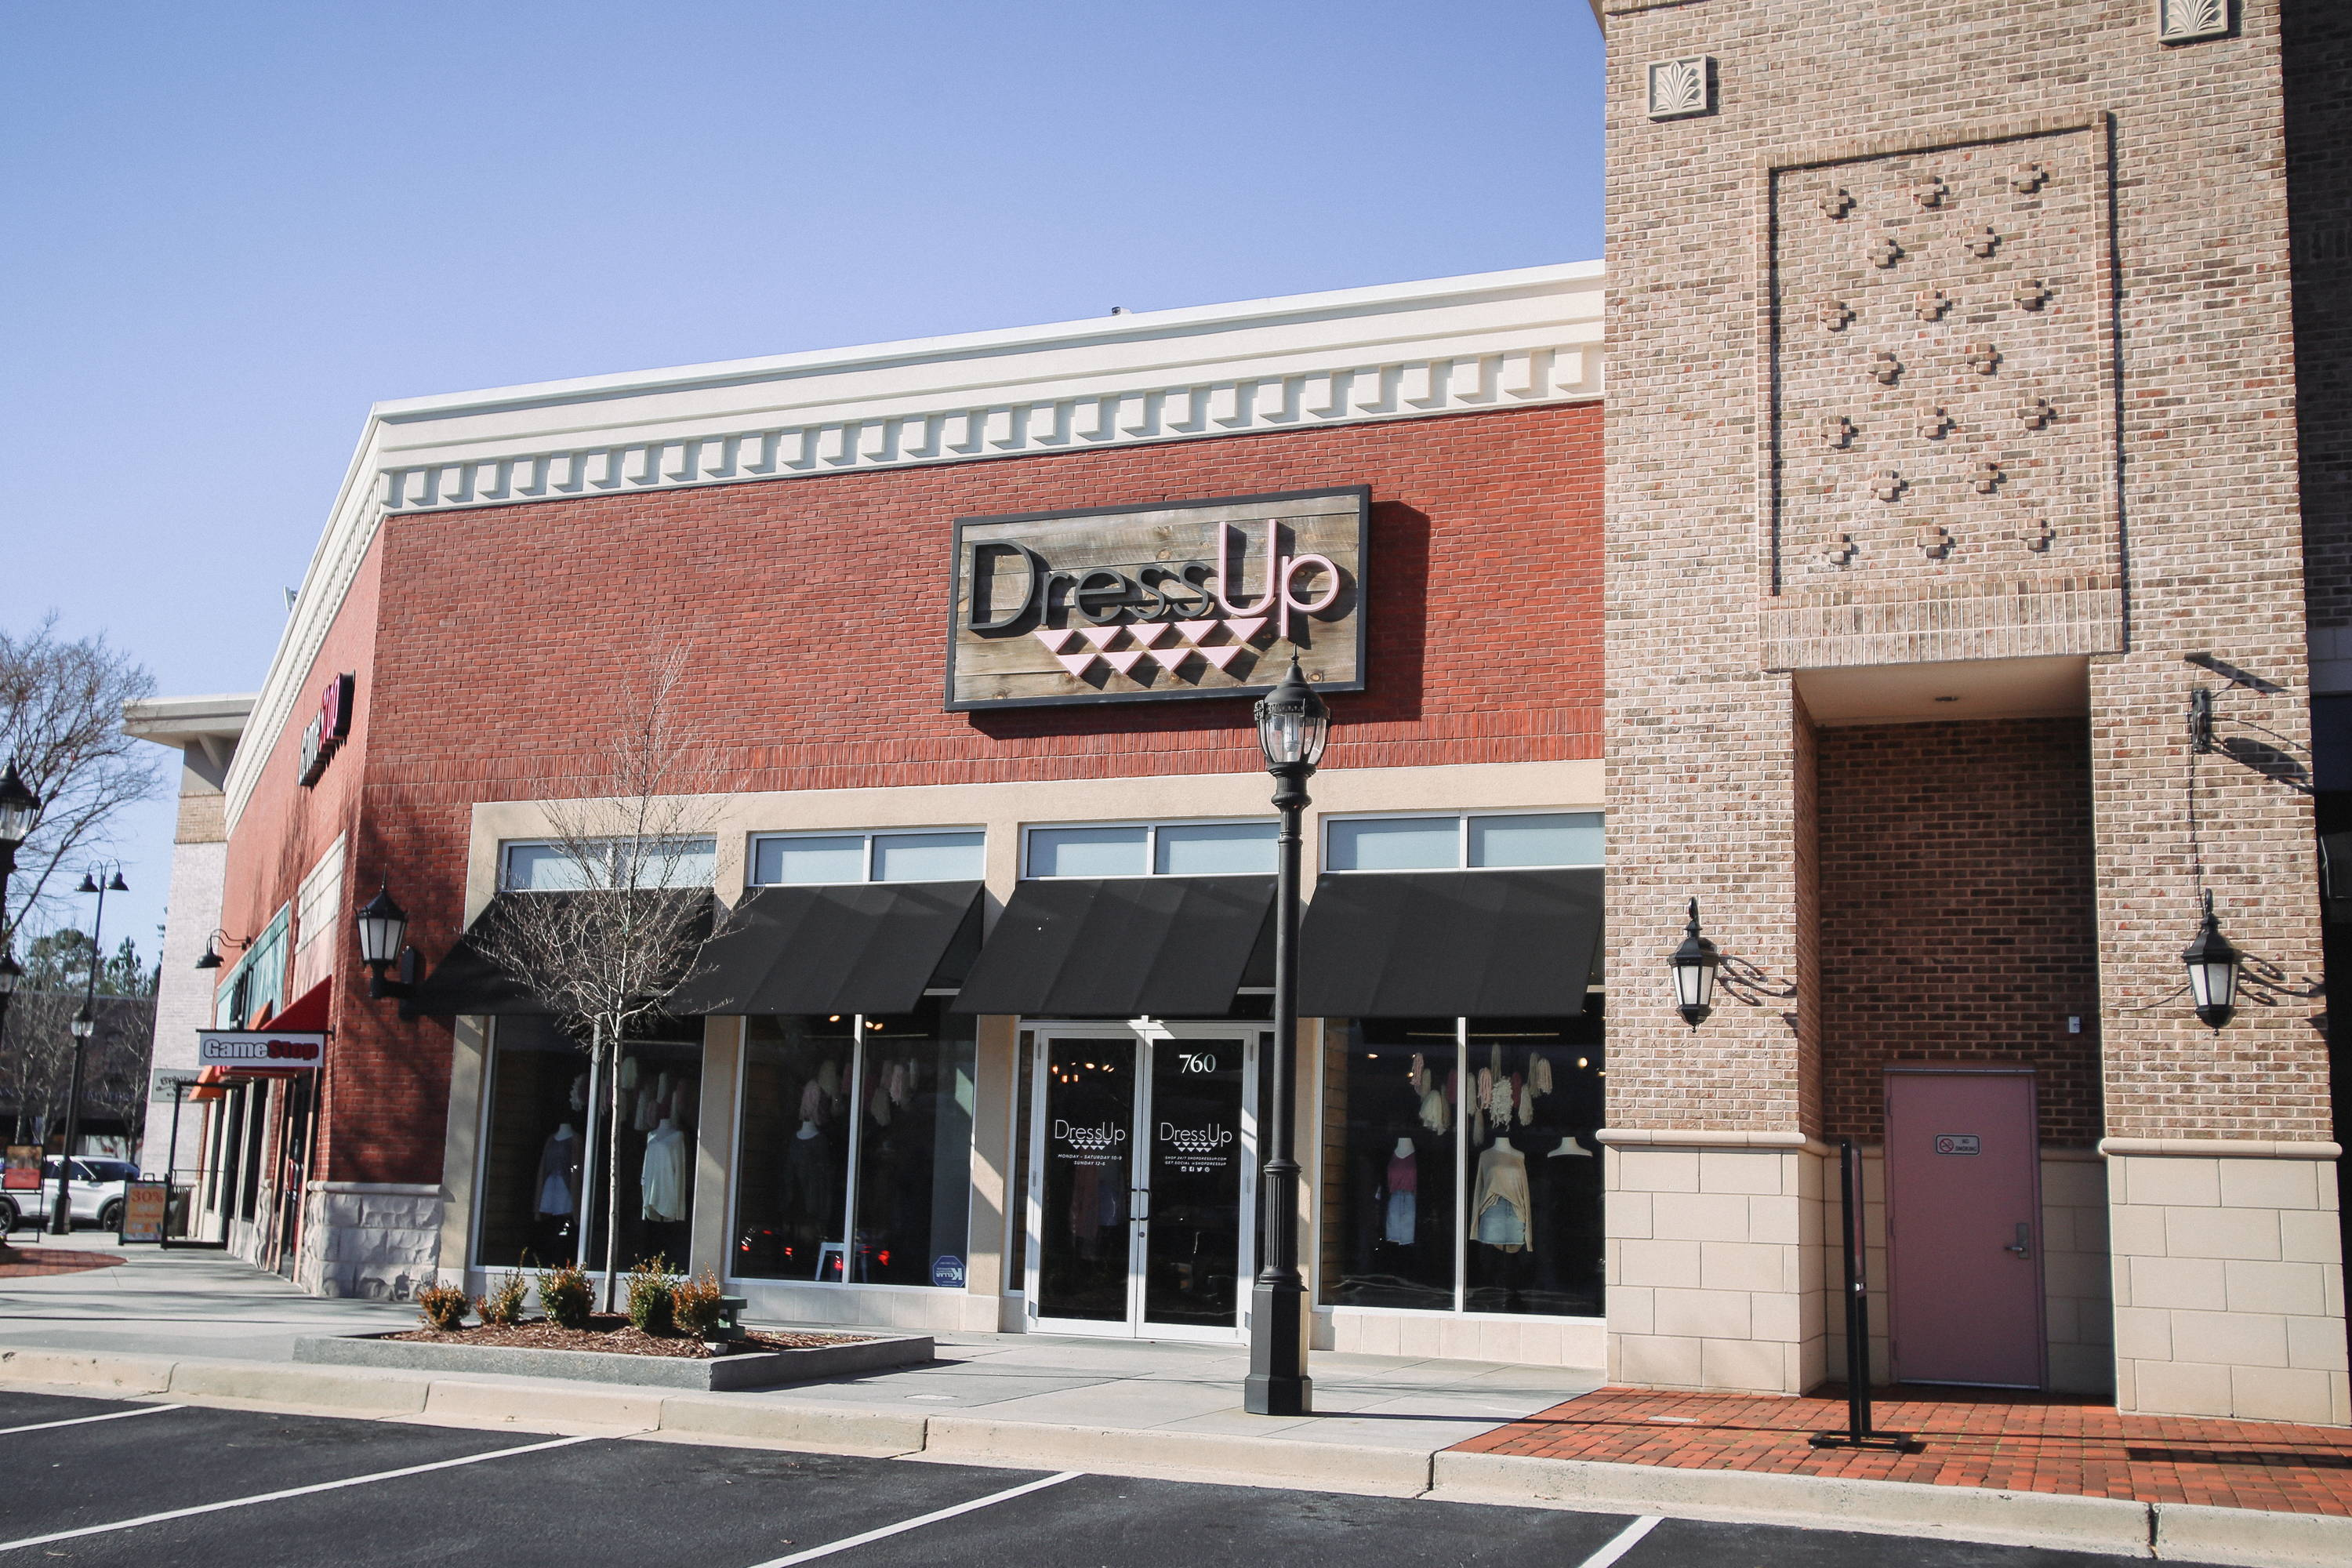 Dress Up - a women's clothing boutique in West Cobb